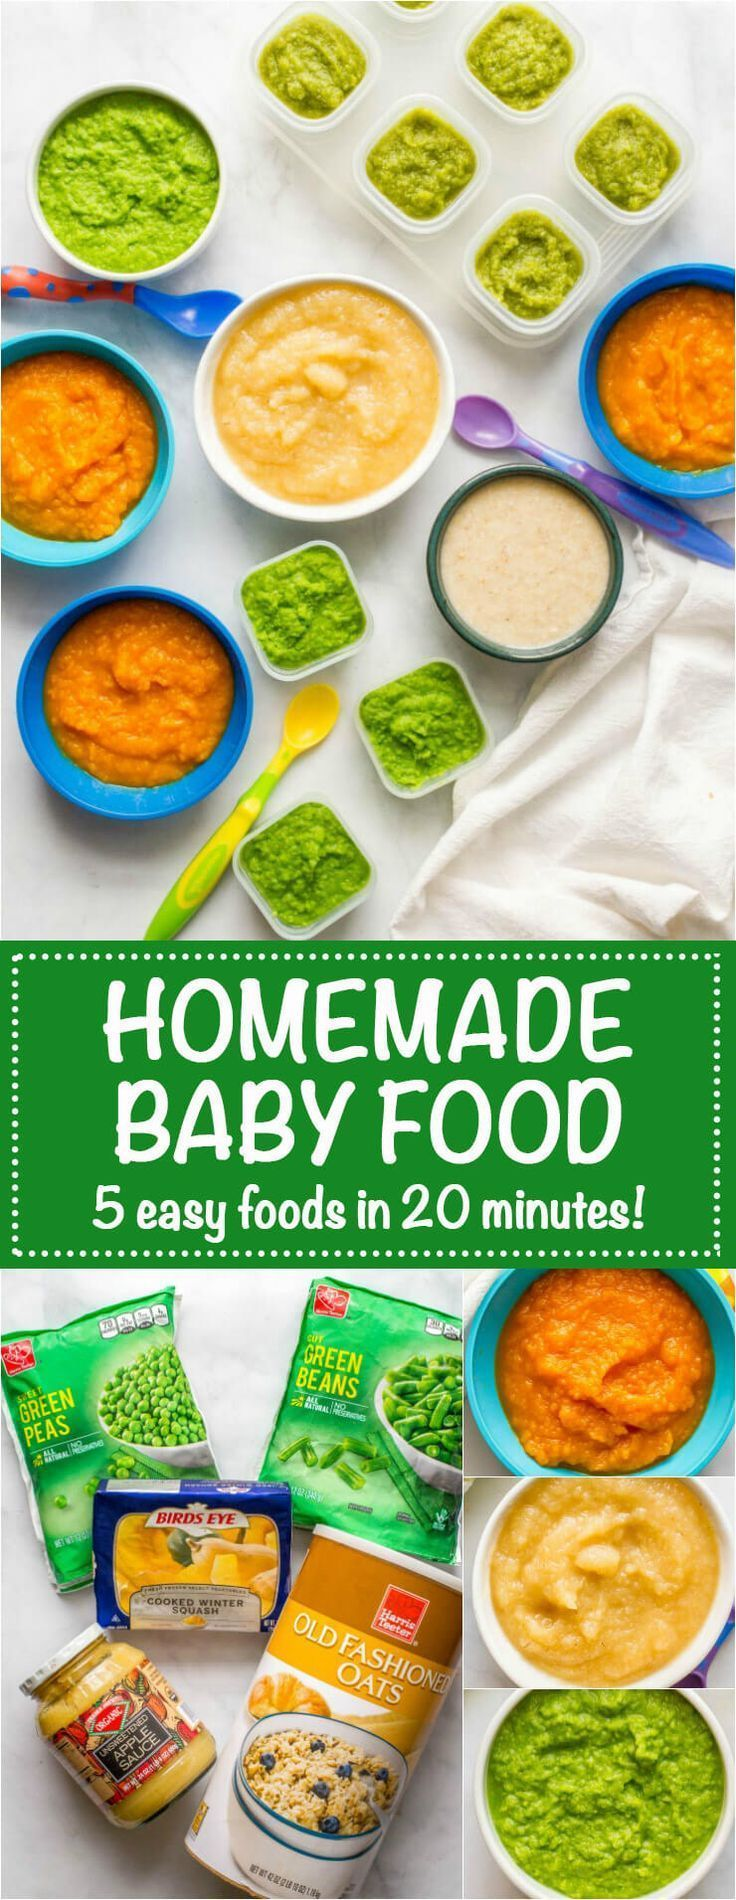 Homemade baby food: Peas, green beans, applesauce, butternut squash and oatmeal,  Homemade baby food: Peas, green beans, applesauce, butternut squash and oatmeal,